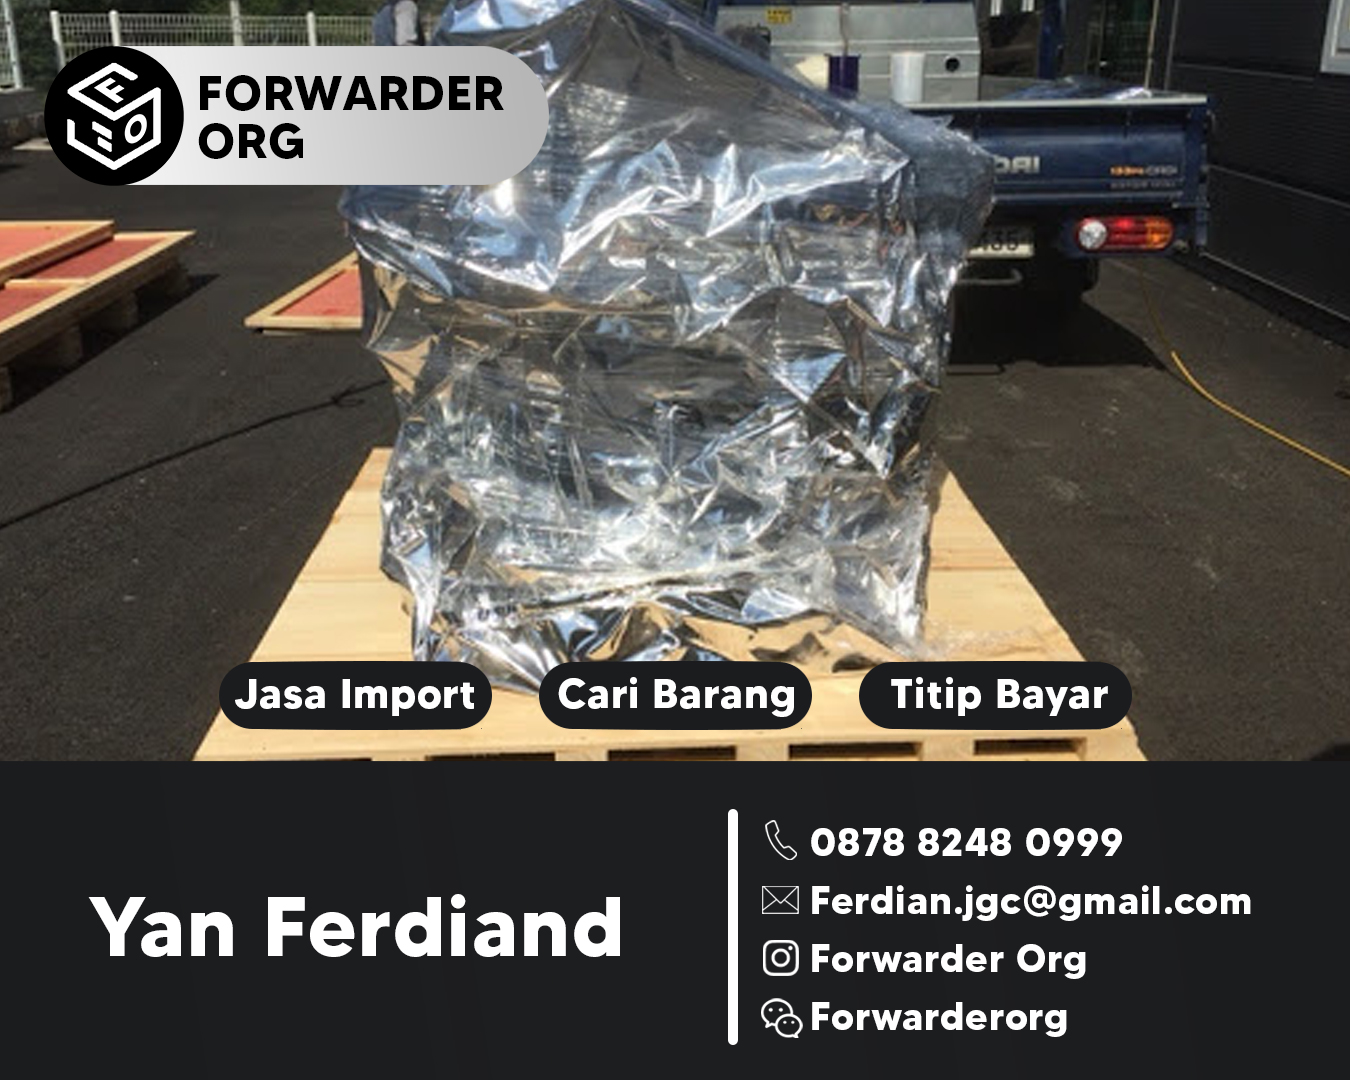 Jasa Import dan Forwarder Alibaba dan 1688 China | FORWARDER ORG